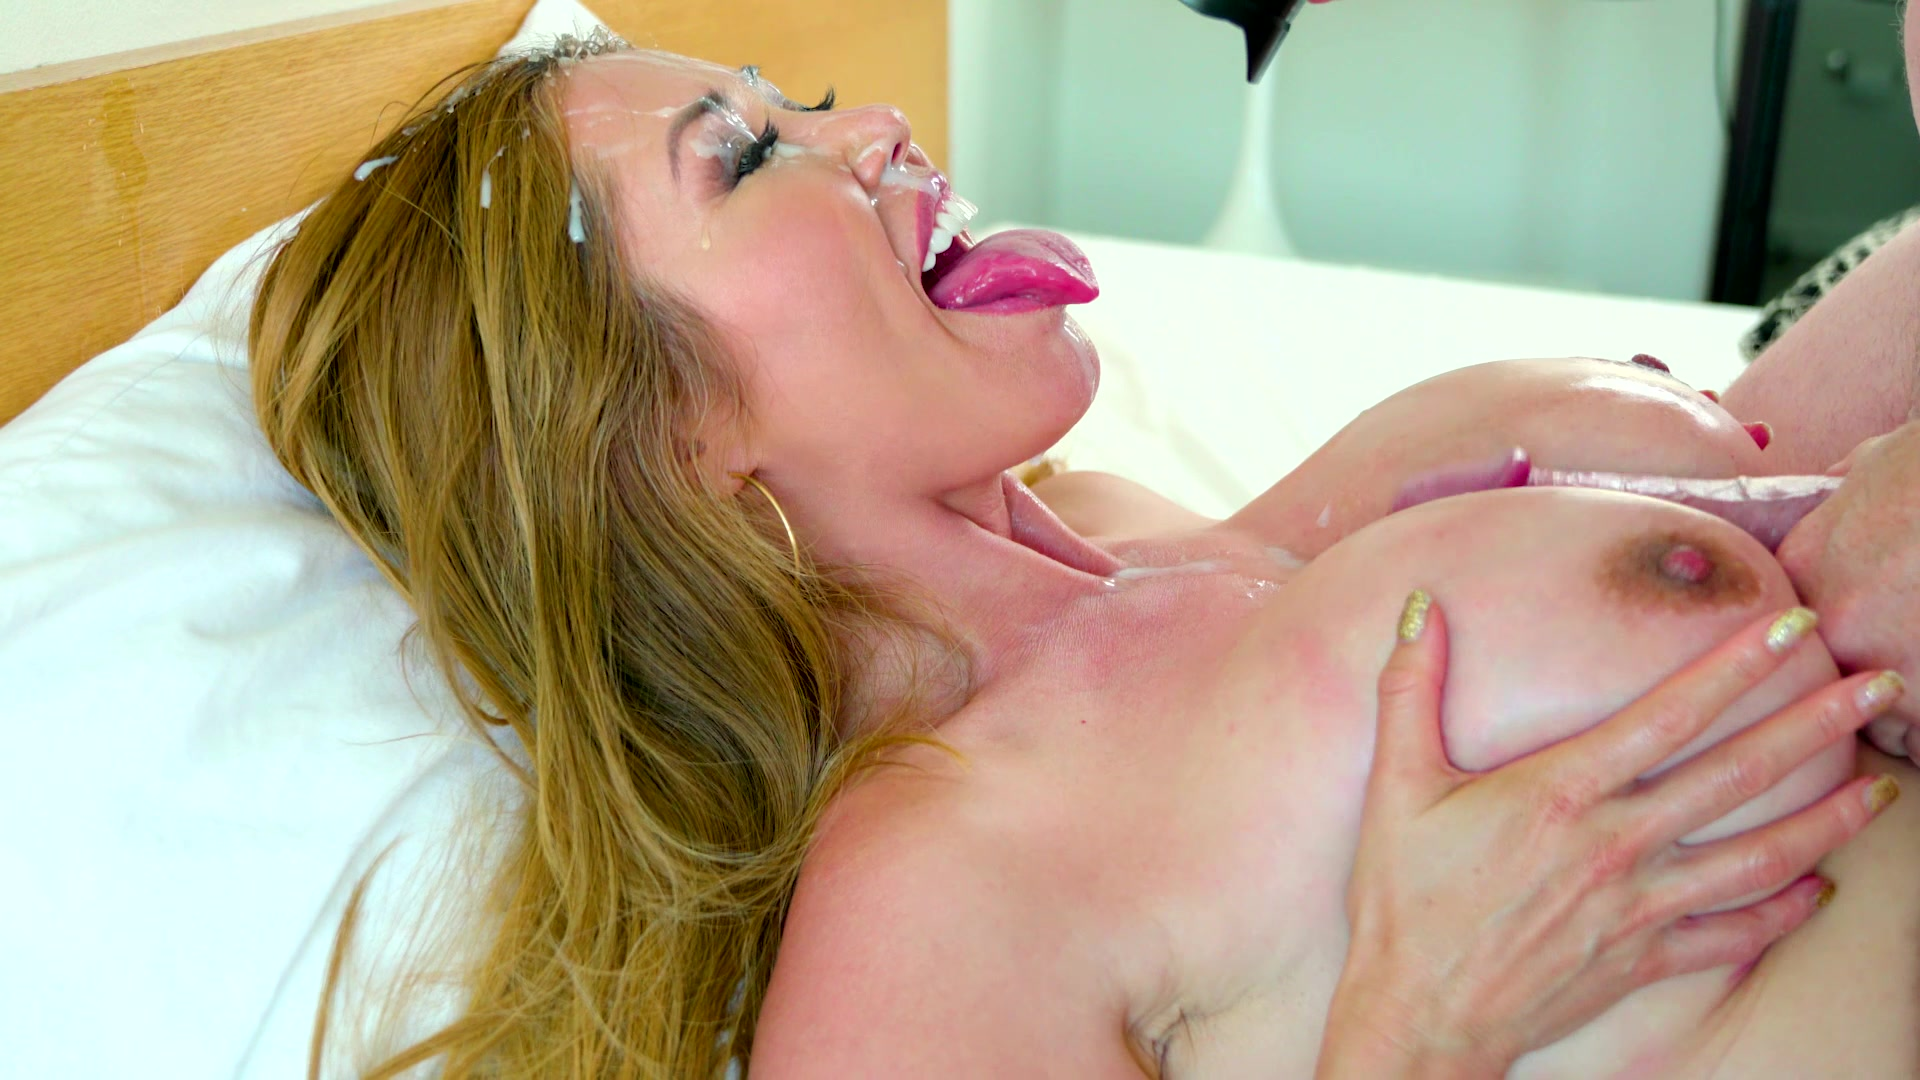 Remarkable, rather kianna dior cum mouth All above